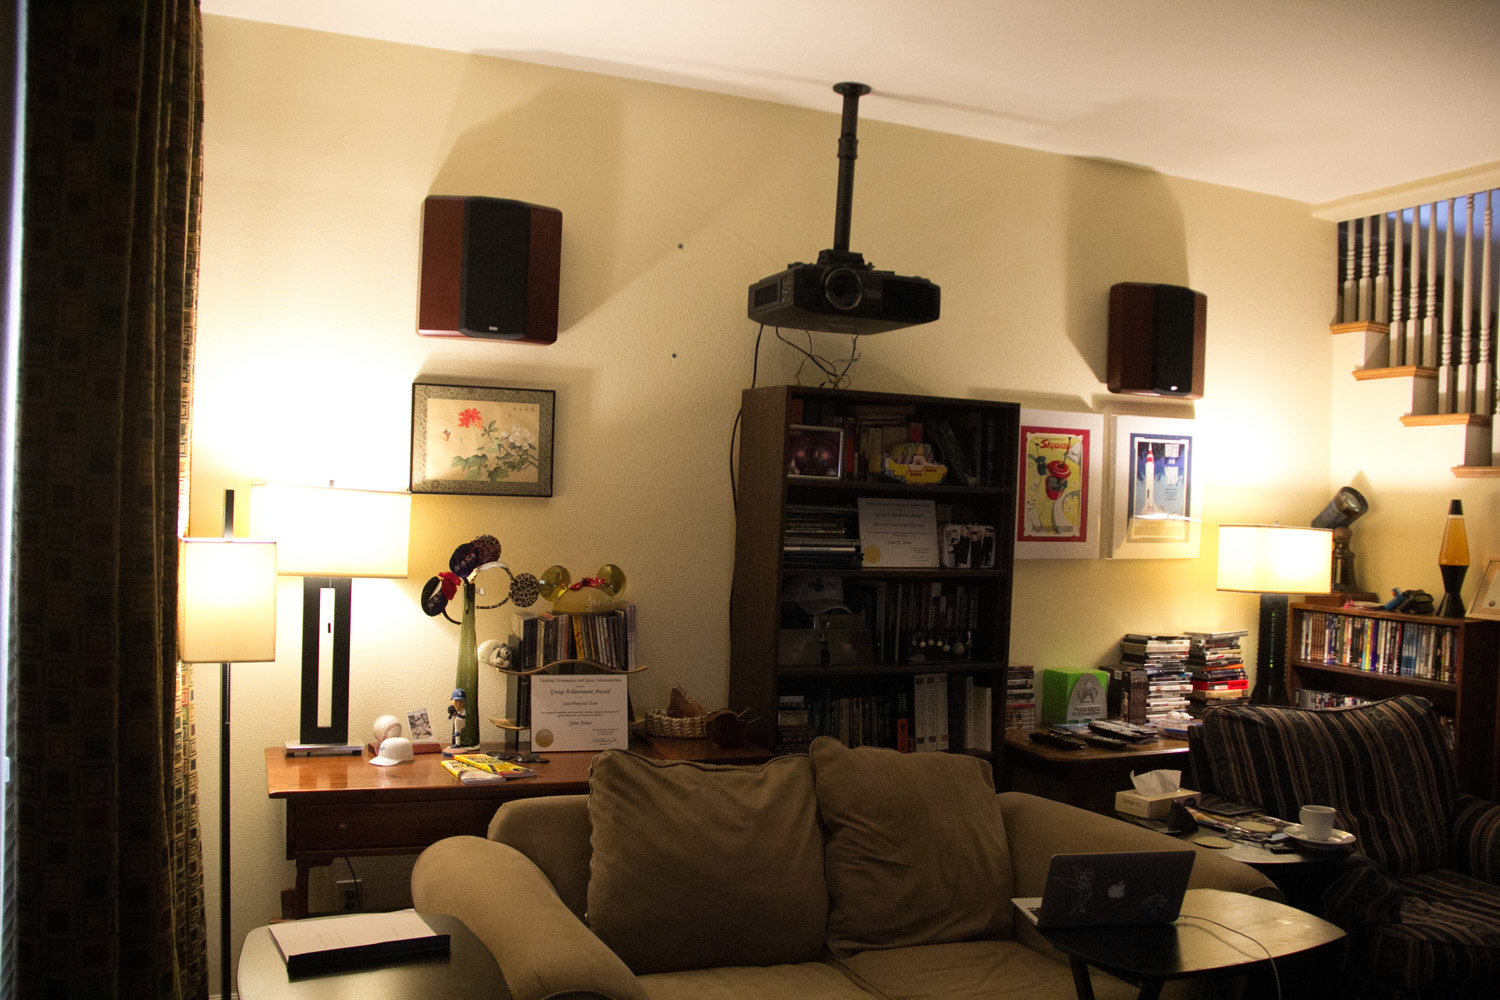 hight resolution of the philips hue bulbs in a more natural low color temperature lighting also showing the